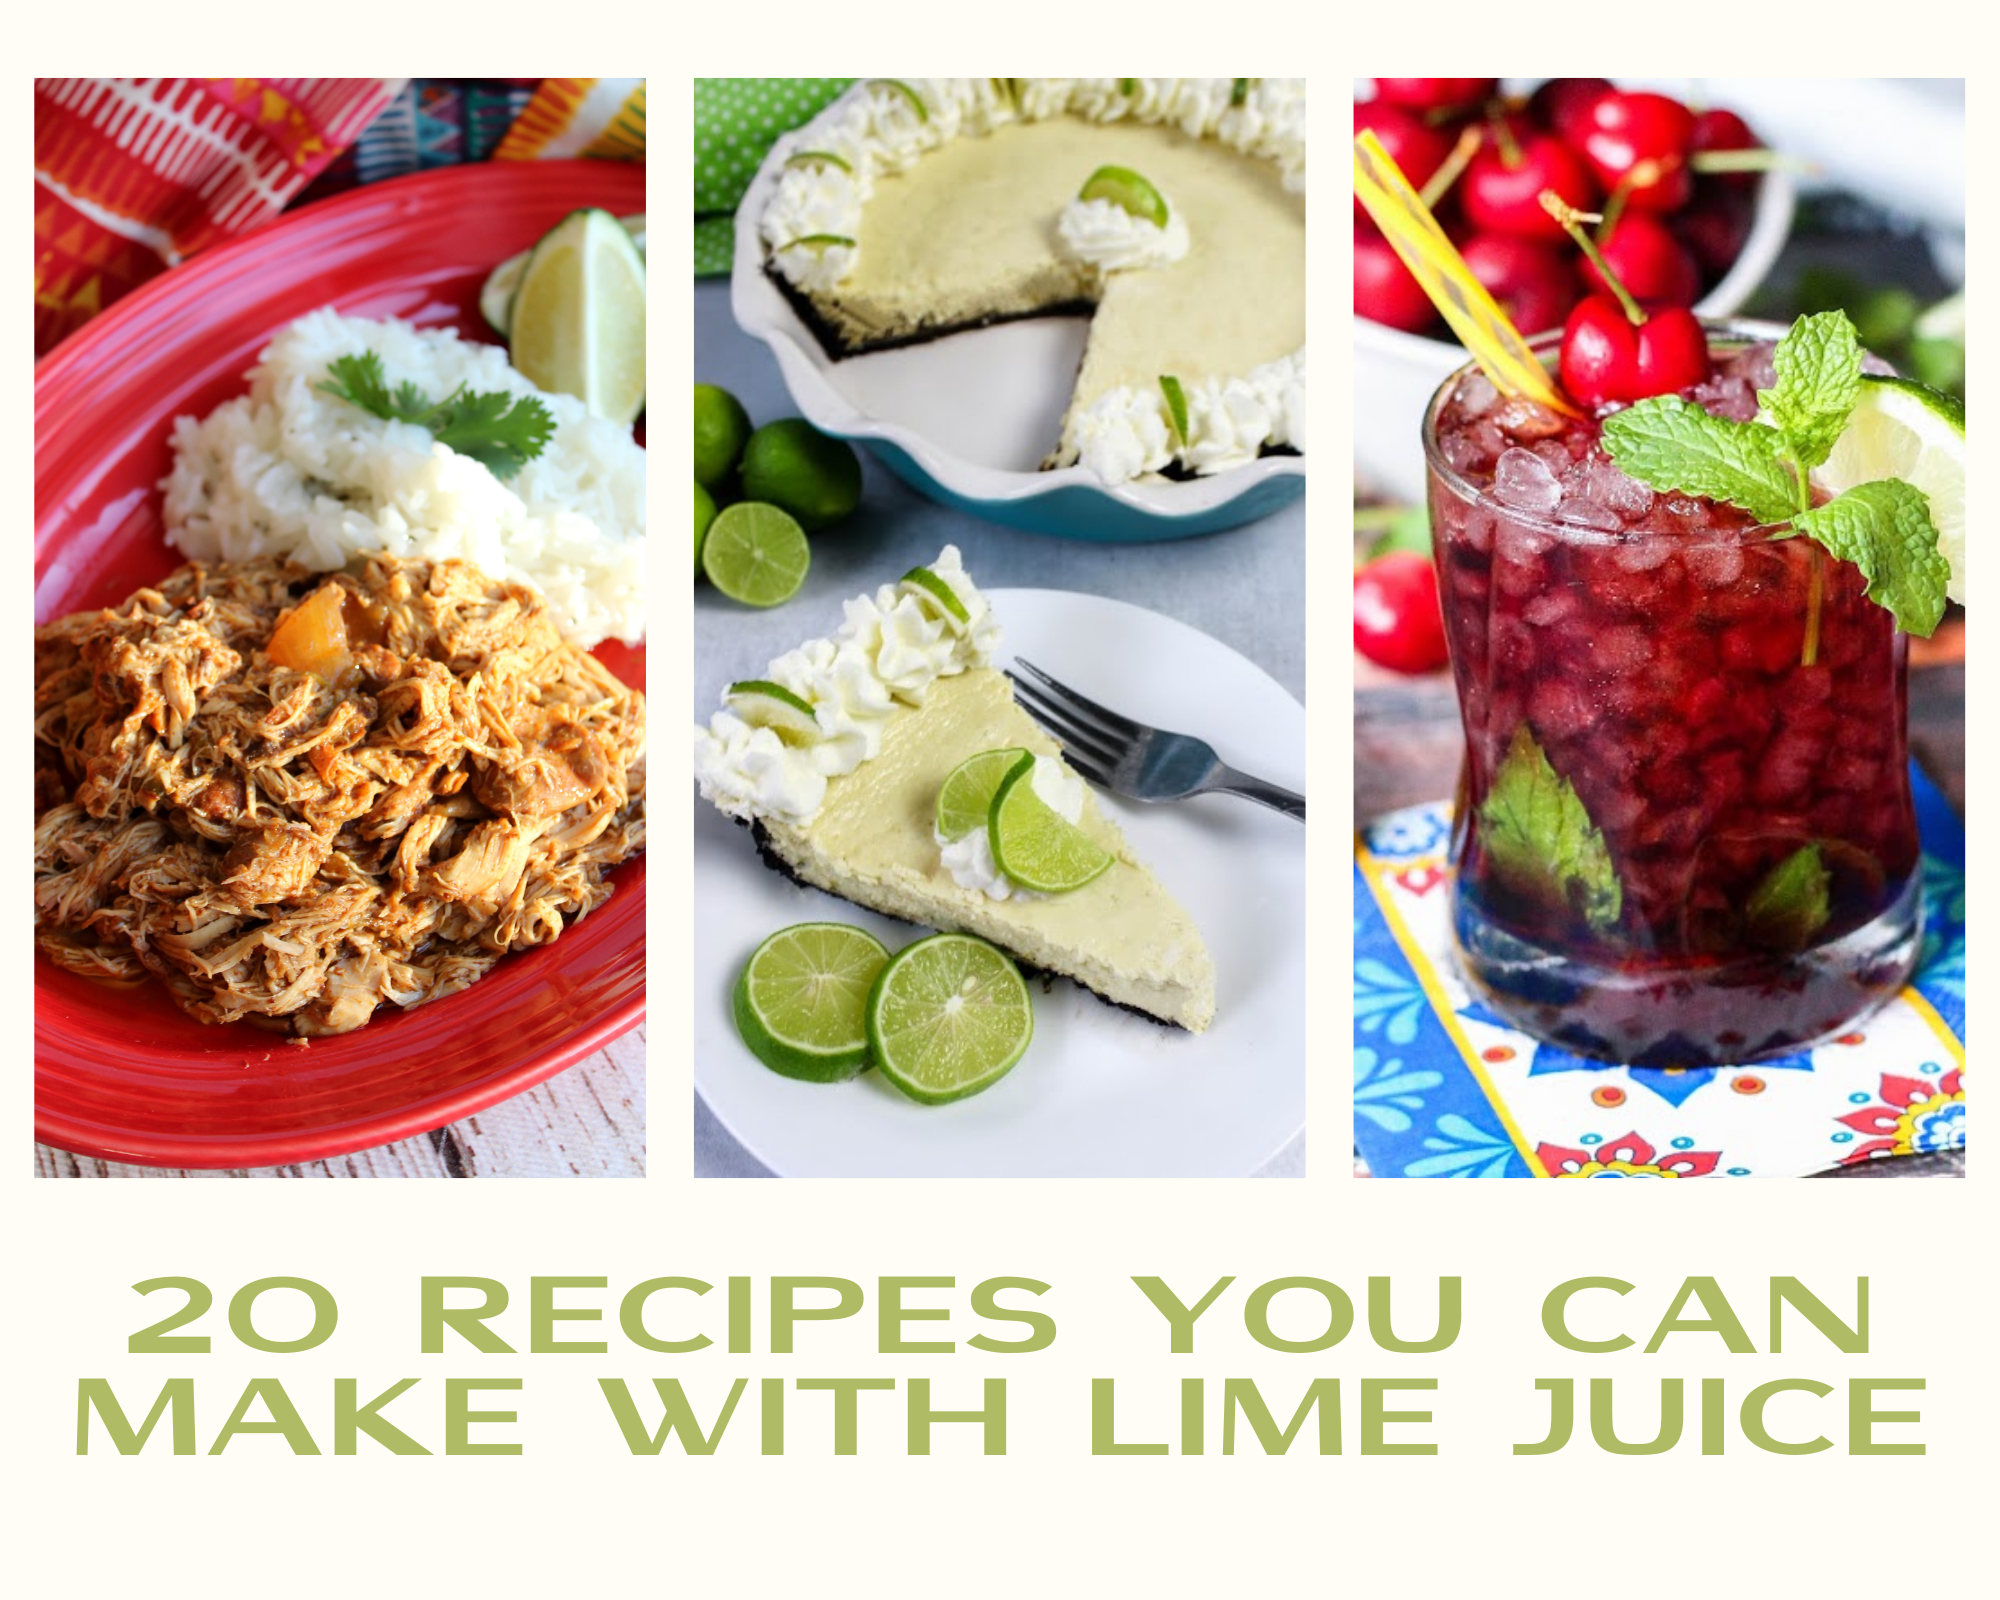 Recipes made with lime juice